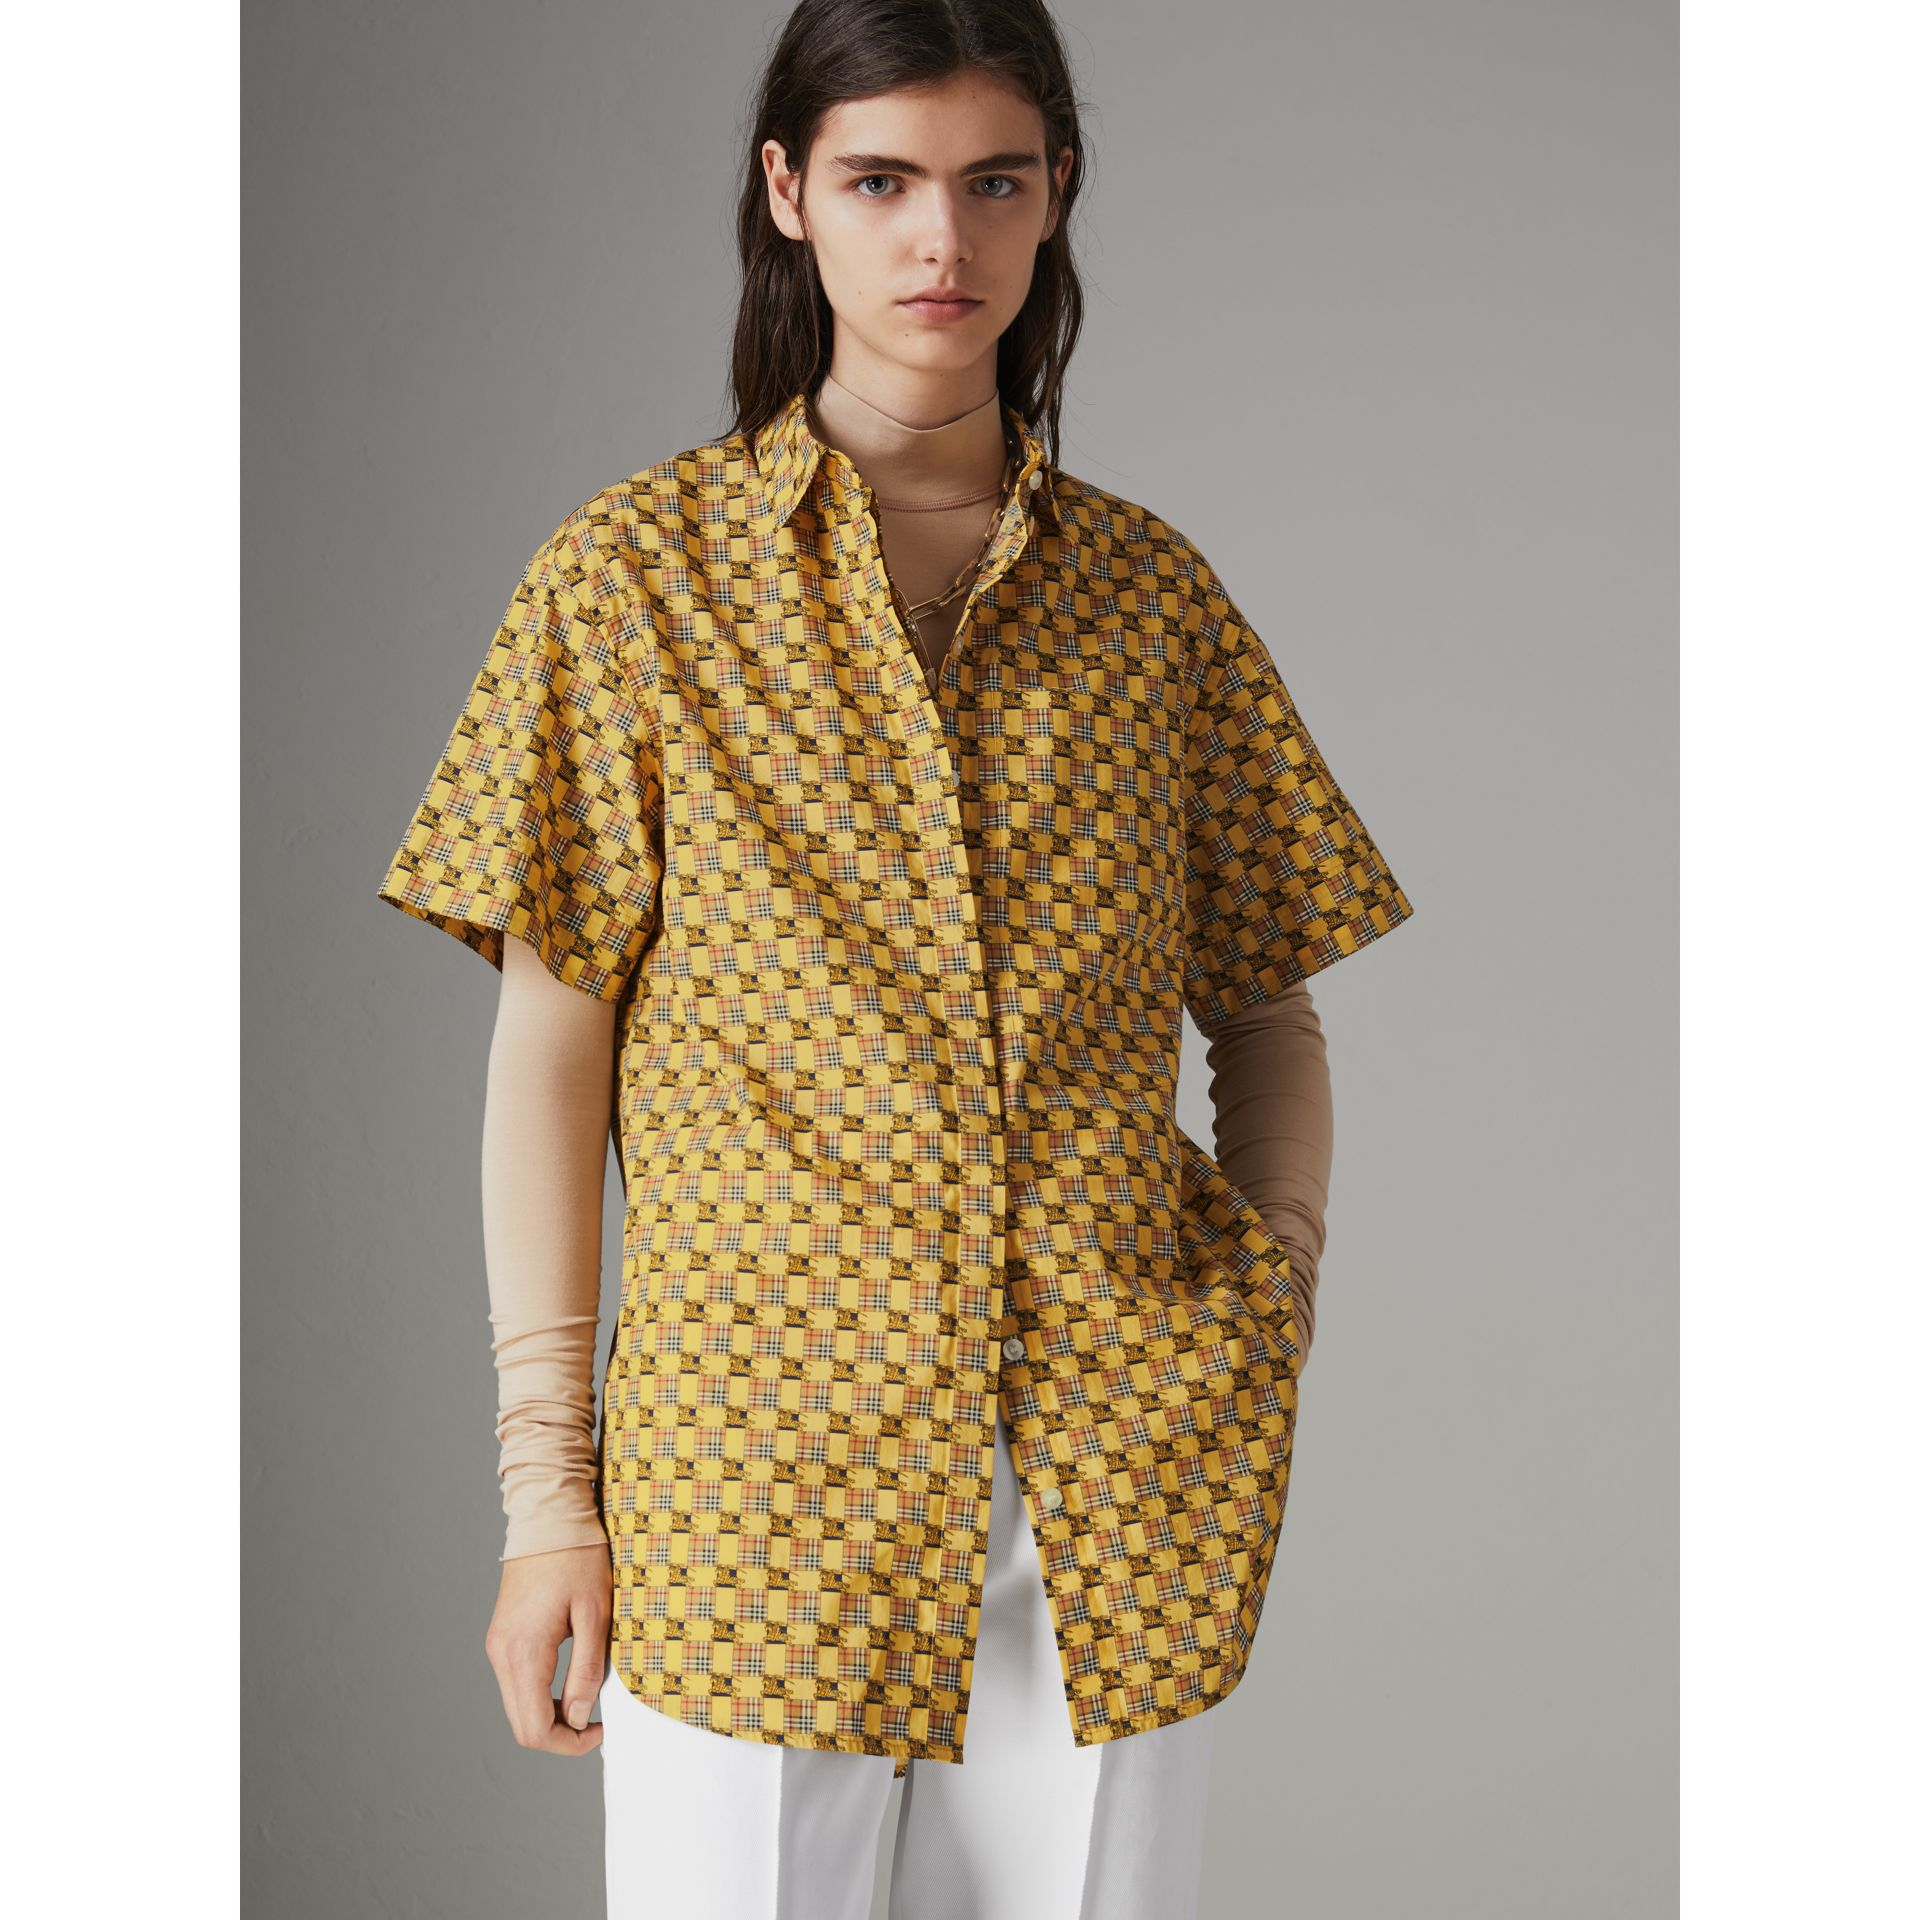 Short-sleeve Tiled Archive Print Cotton Shirt in Yellow - Women | Burberry United States - gallery image 4